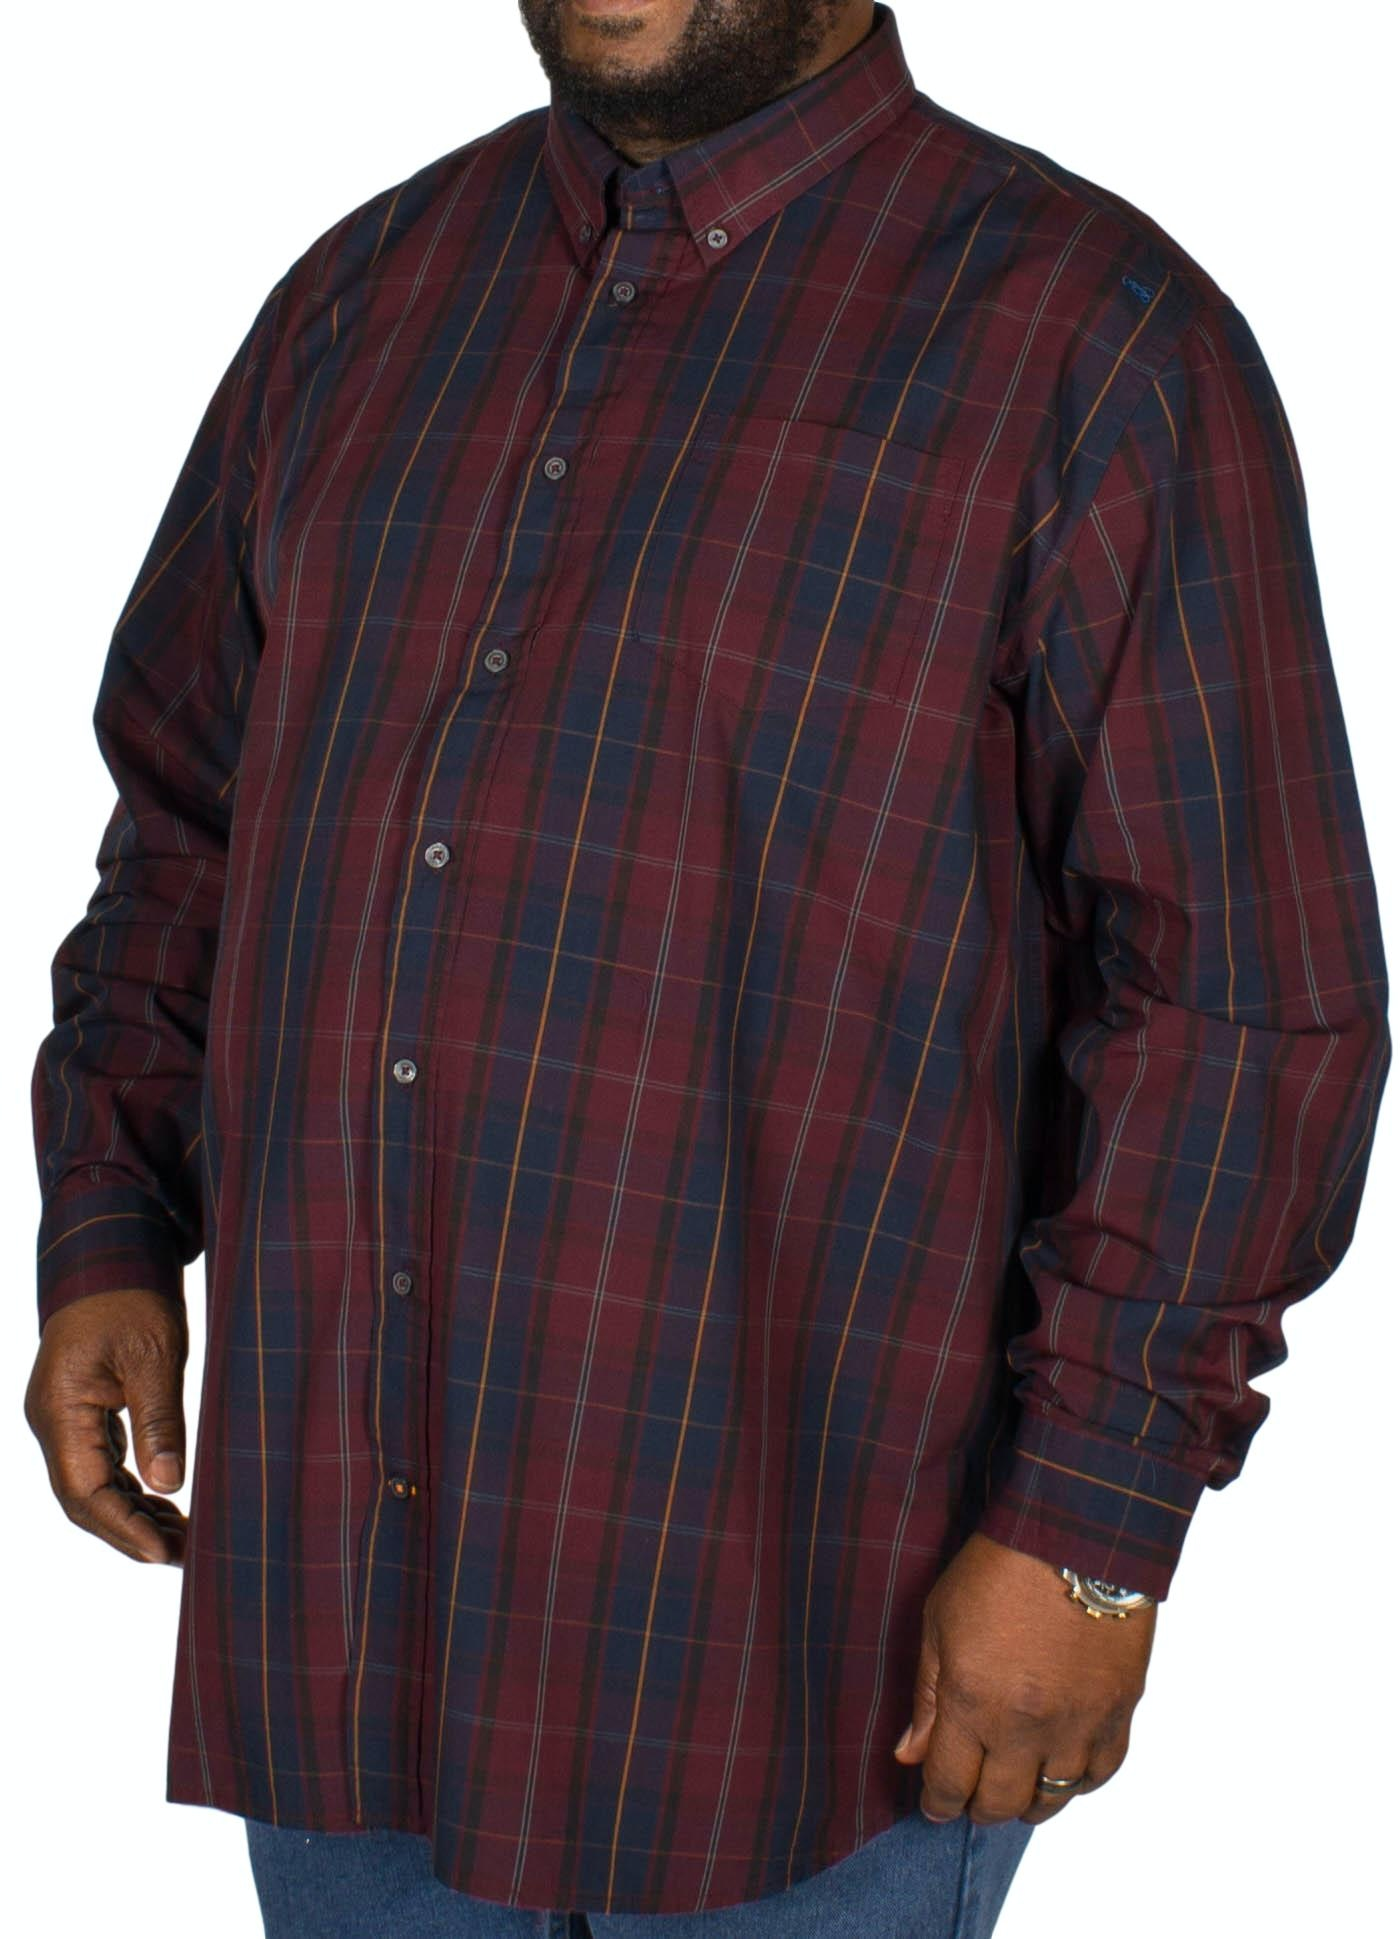 D555 Grady Check Shirt Navy/Wine Tall